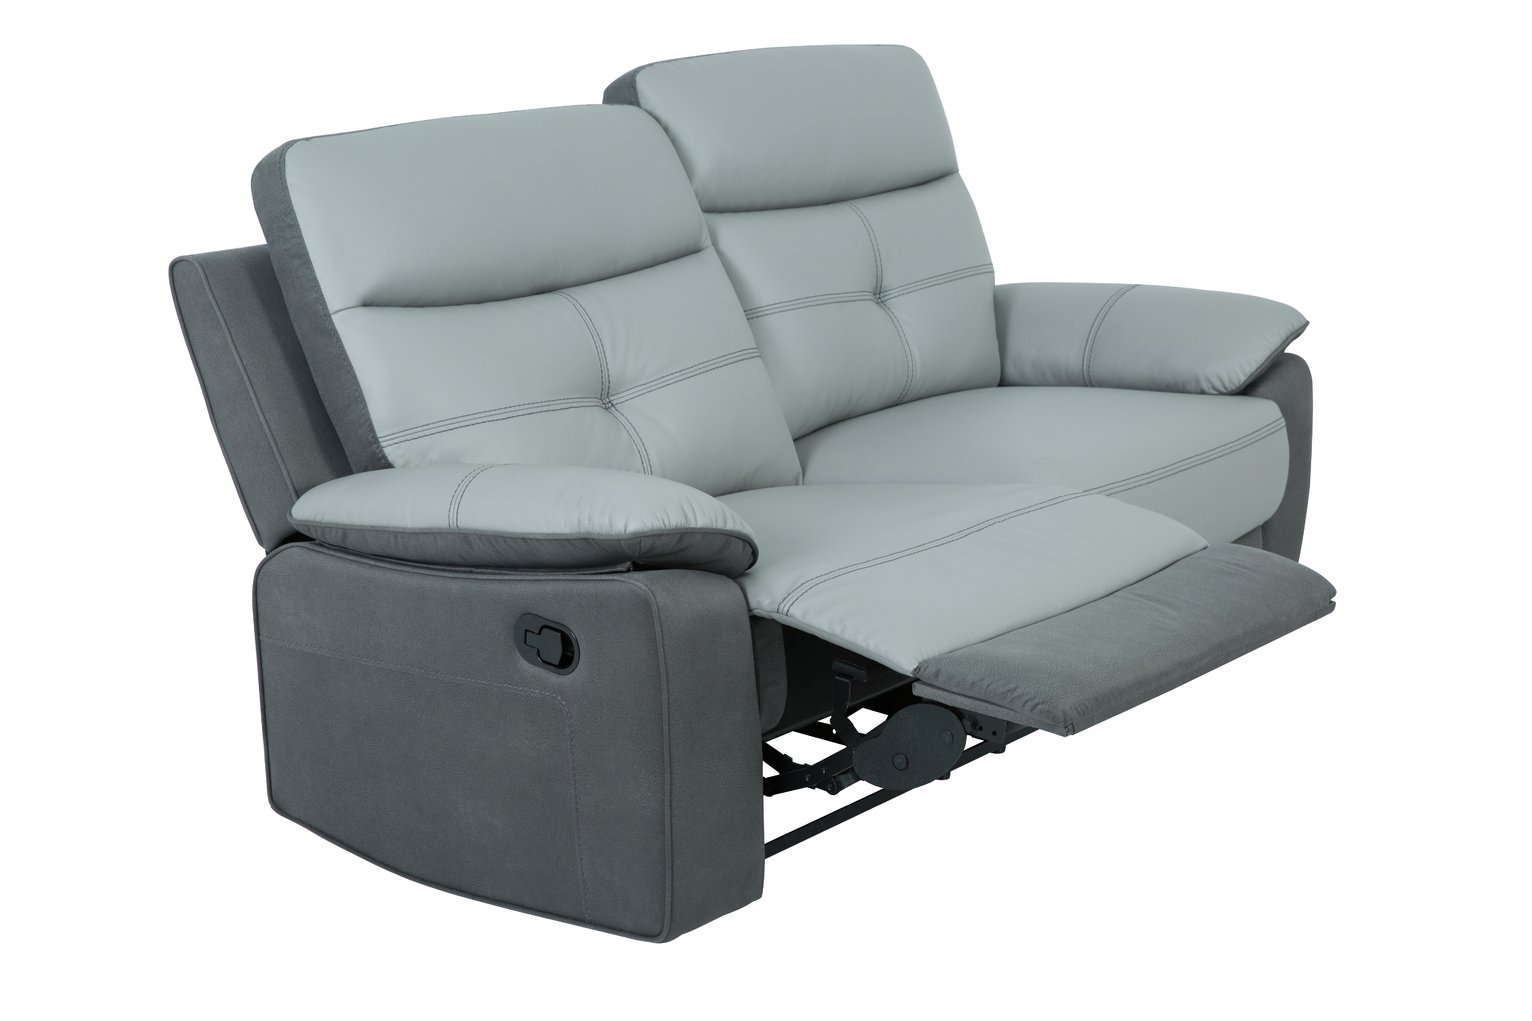 Argos Home Charles 3 Seater Leather Mix Recliner Sofa - Grey